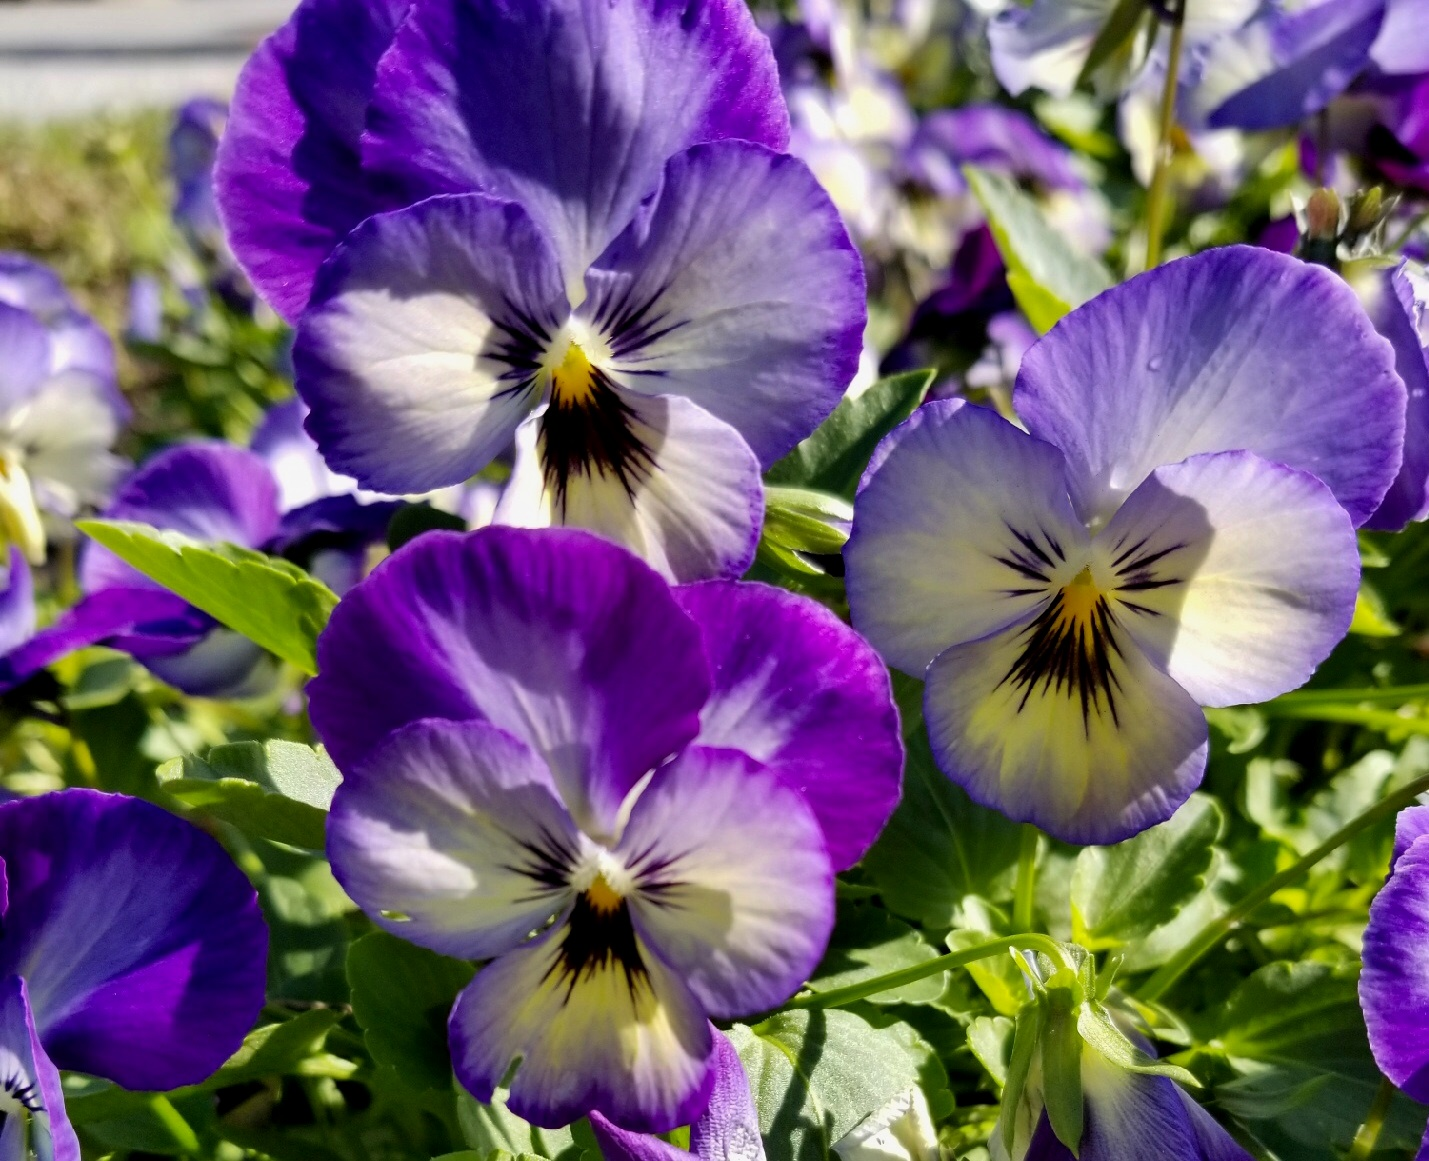 ColorMax comes in 10 colors and a mix. 'Icy Blue,' (shown) 'Popcorn' and 'Lemon Splash' are must-have plants for cool-season landscapes. The plants reach 6 to 8 inches tall with a spread of about 10 inches. ColorMax violas are very cold-tolerant and transplant to the garden with ease.